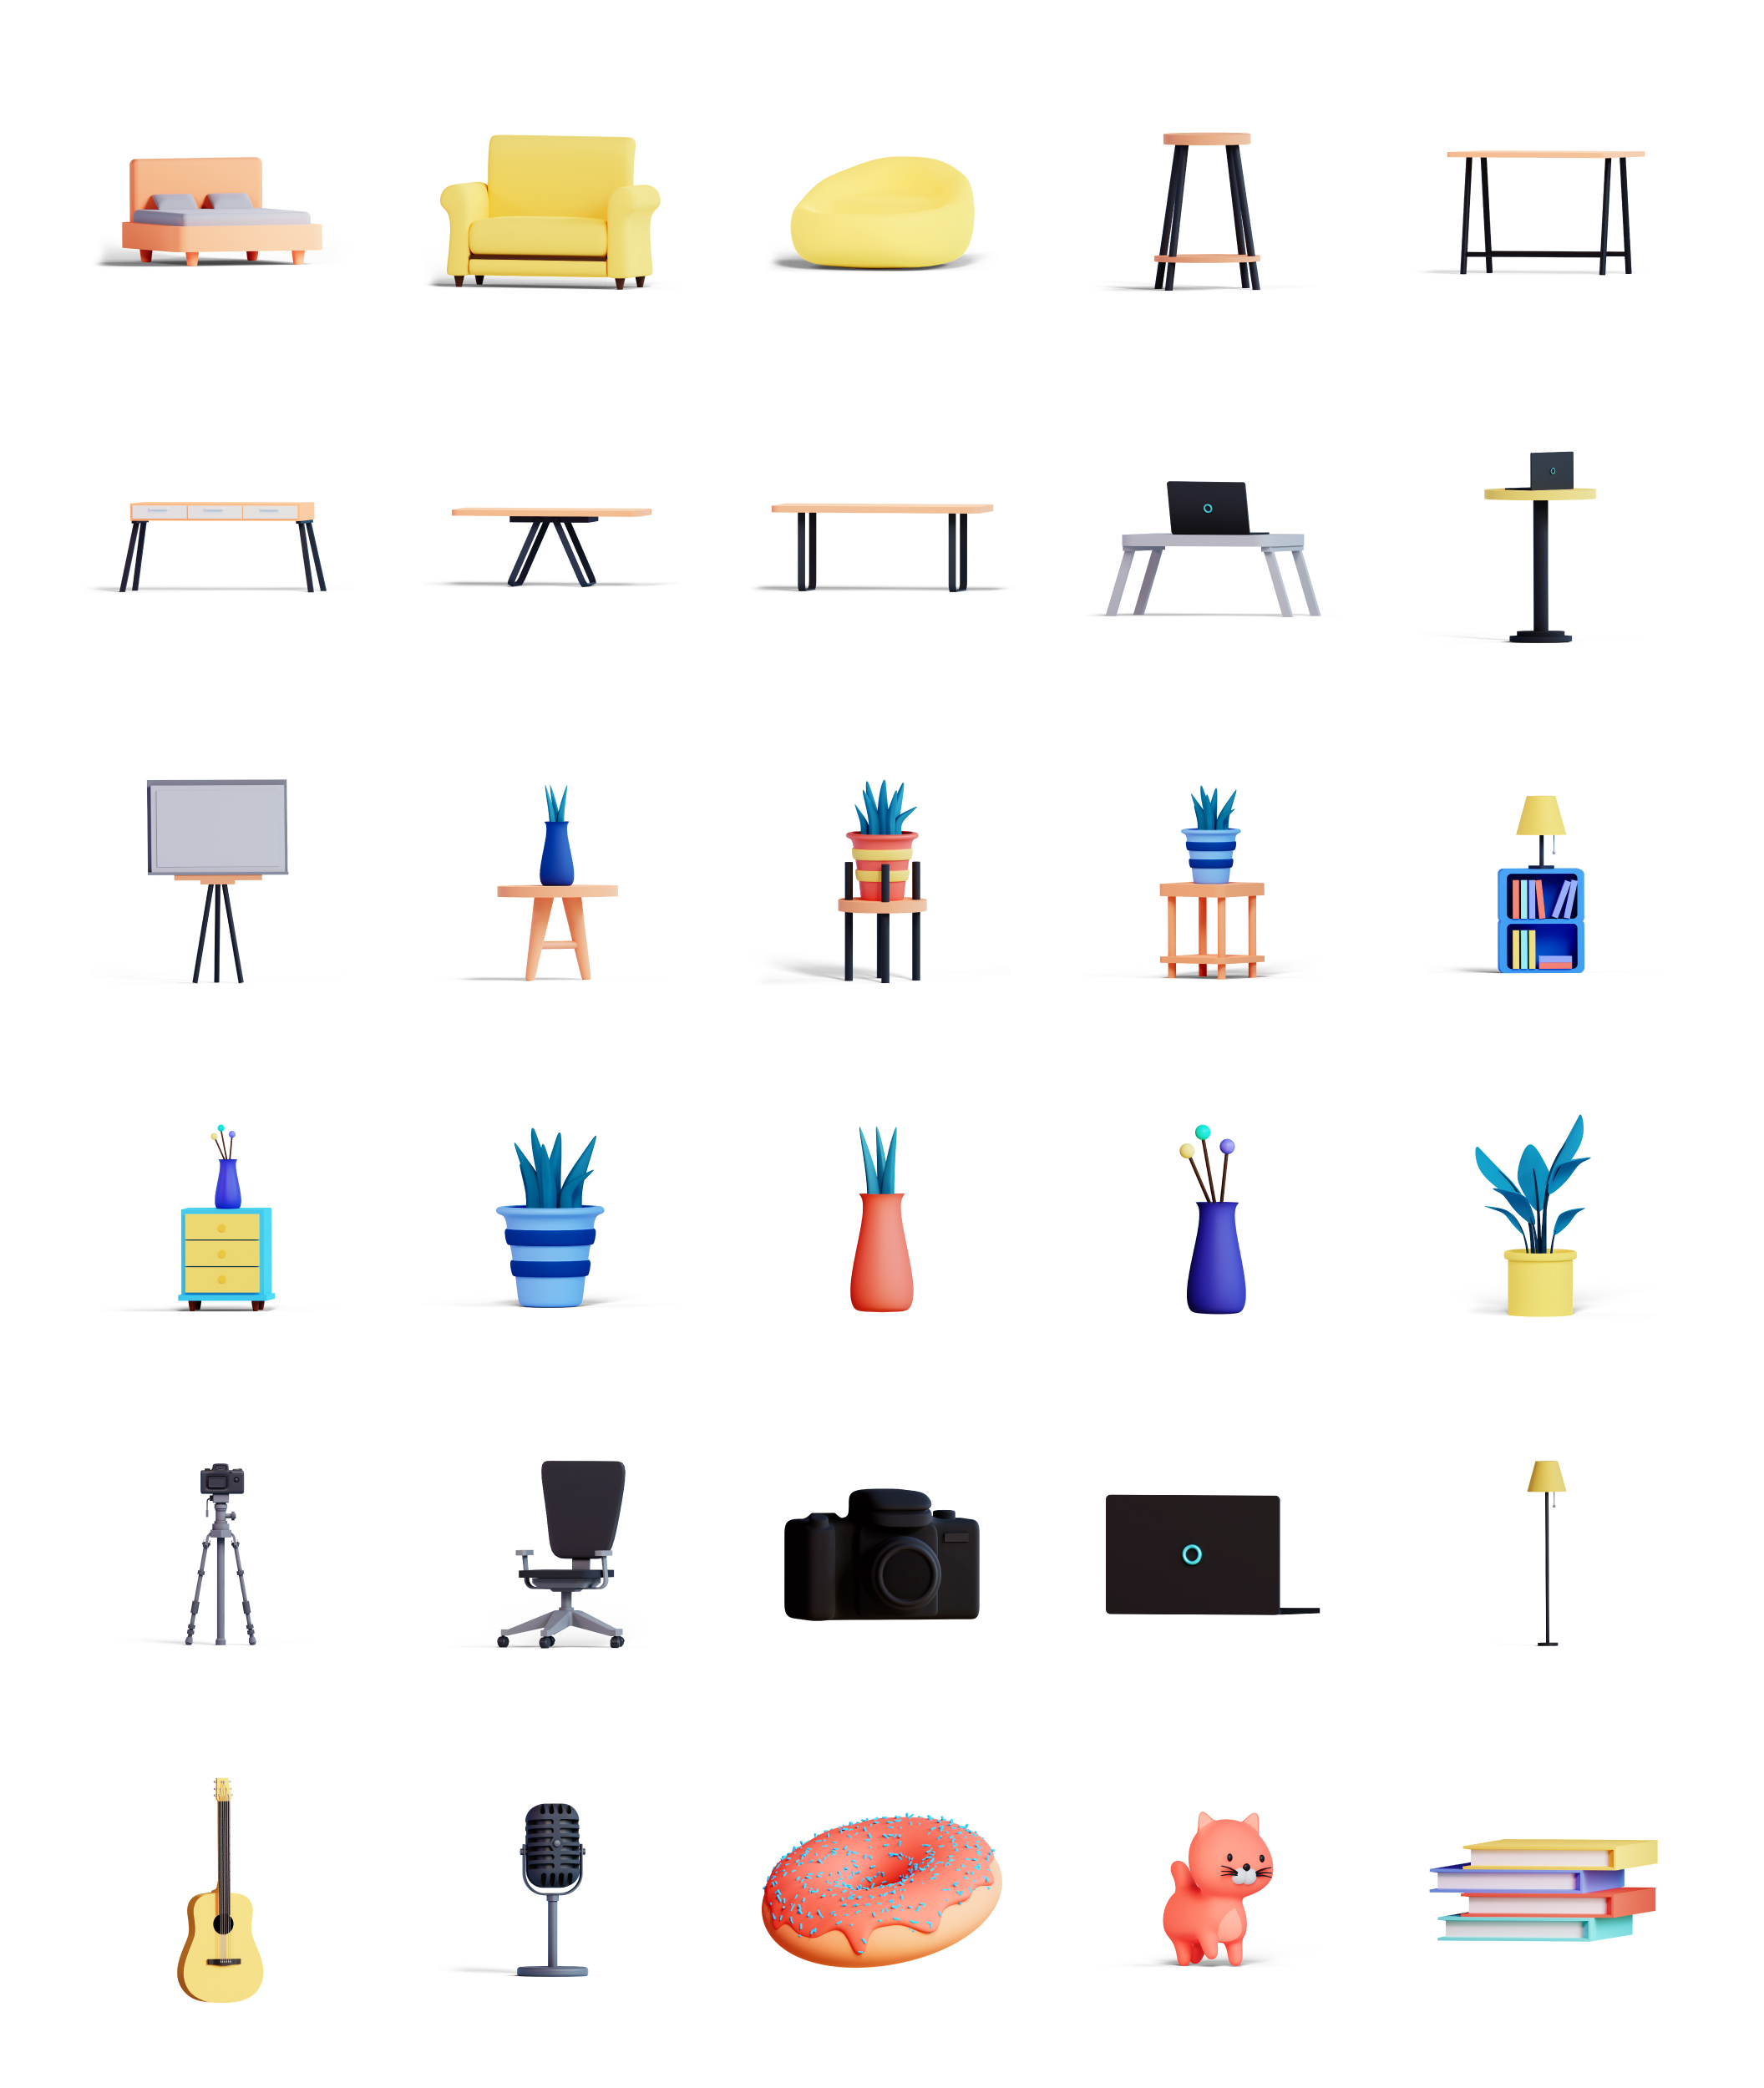 3D Illustration Objects Preview Image